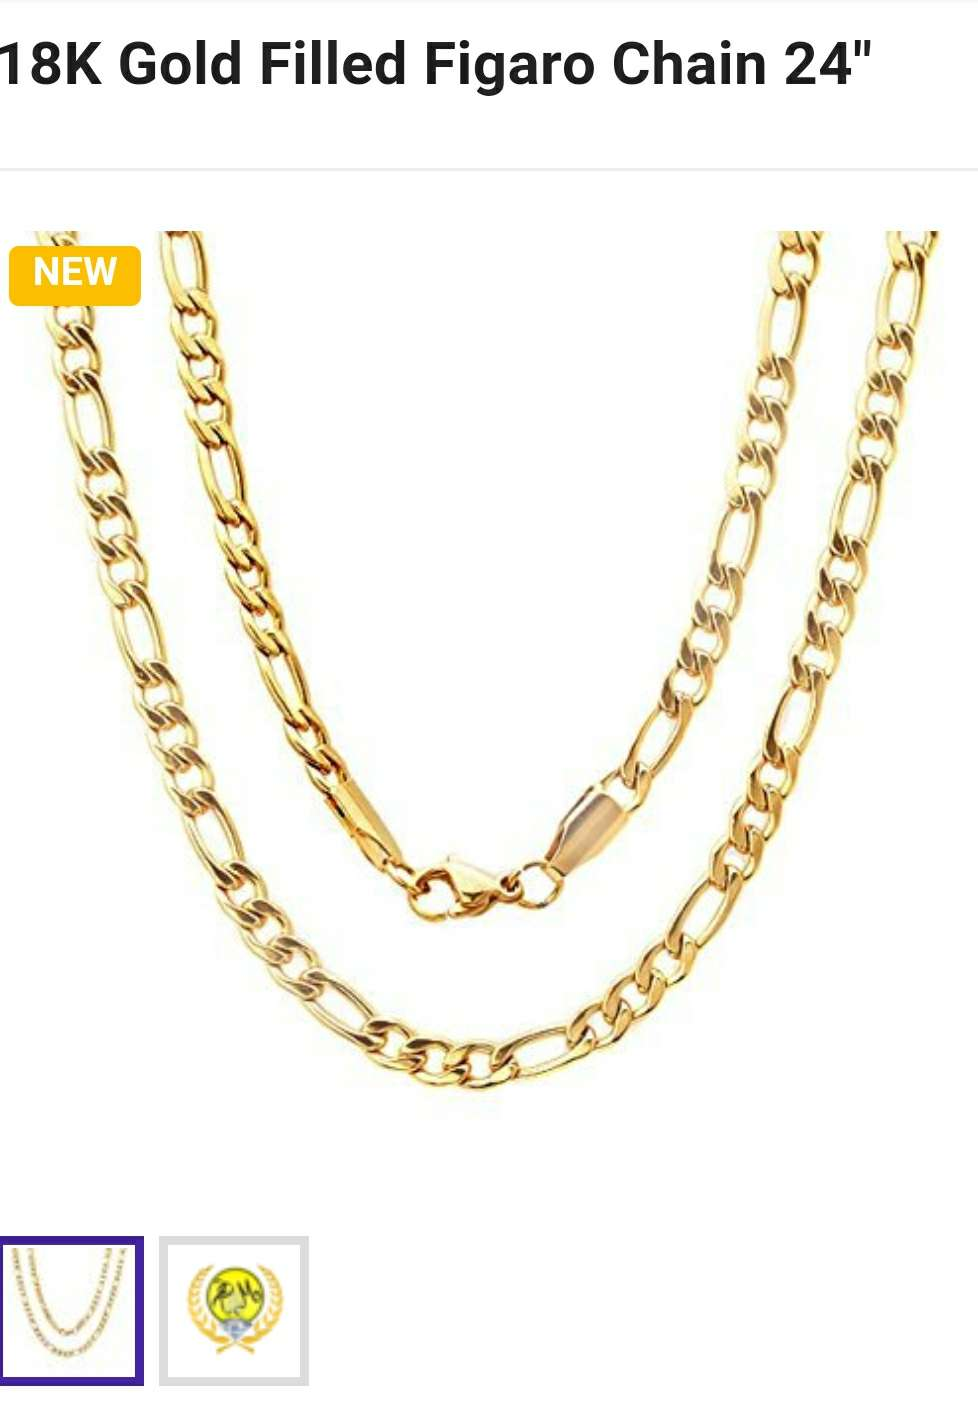 Photo Brand new 14 karat gold filled men's Fiargo gold chain necklace